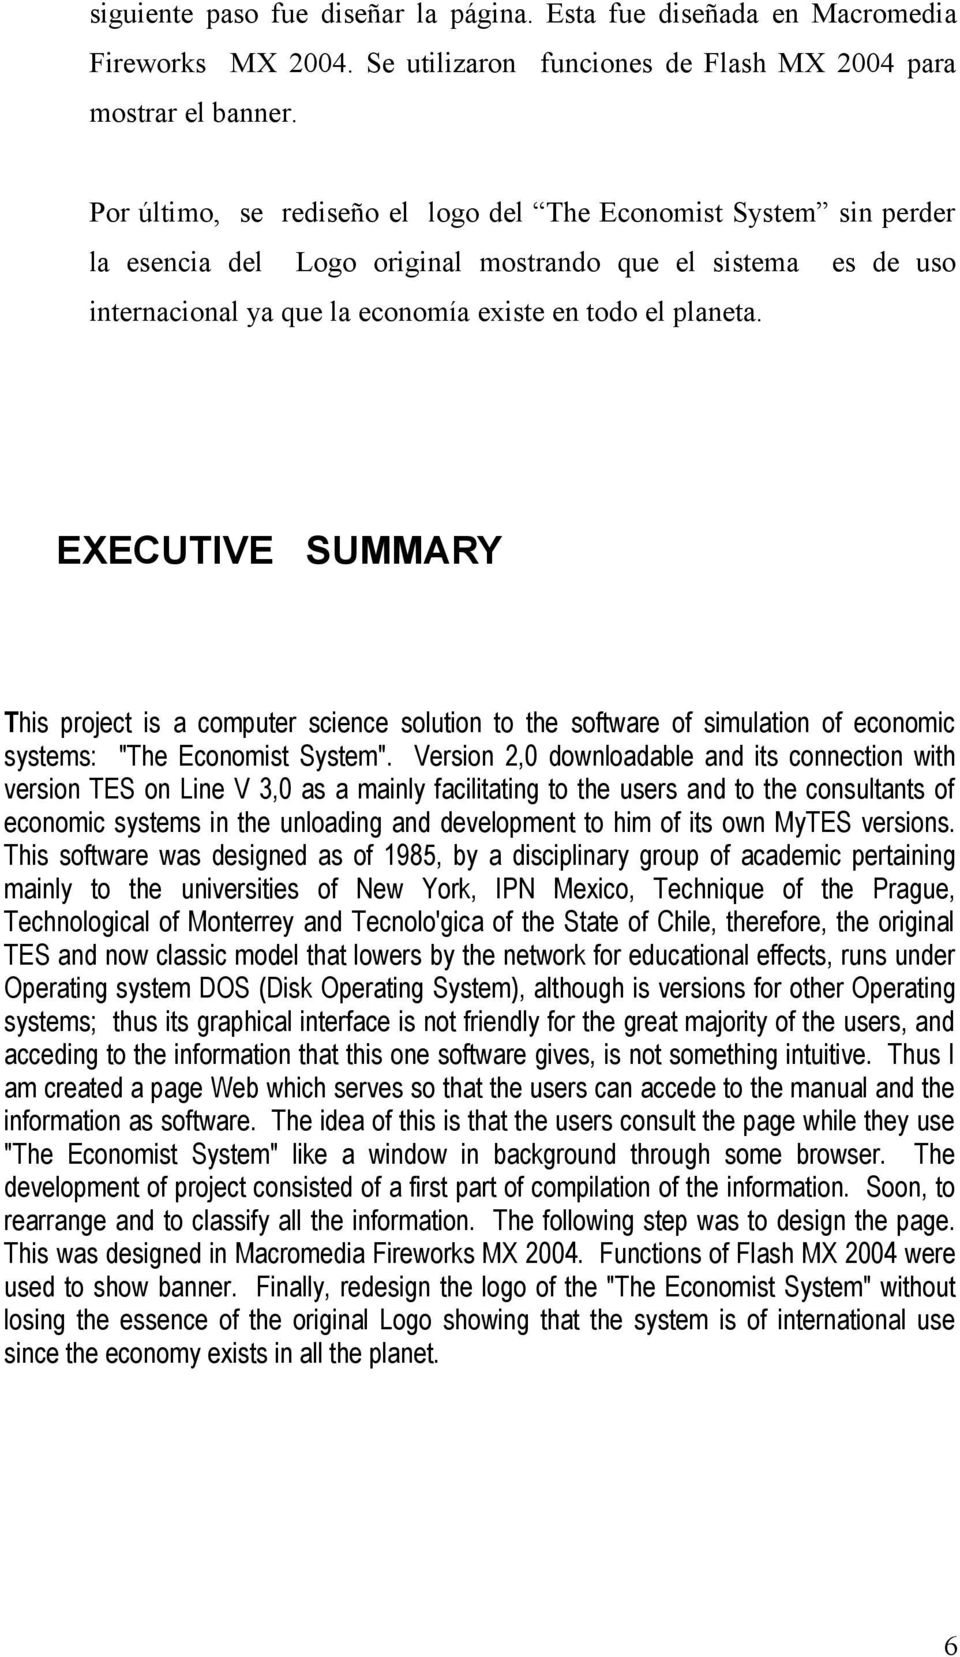 "EXECUTIVE SUMMARY This project is a computer science solution to the software of simulation of economic systems: ""The Economist System""."